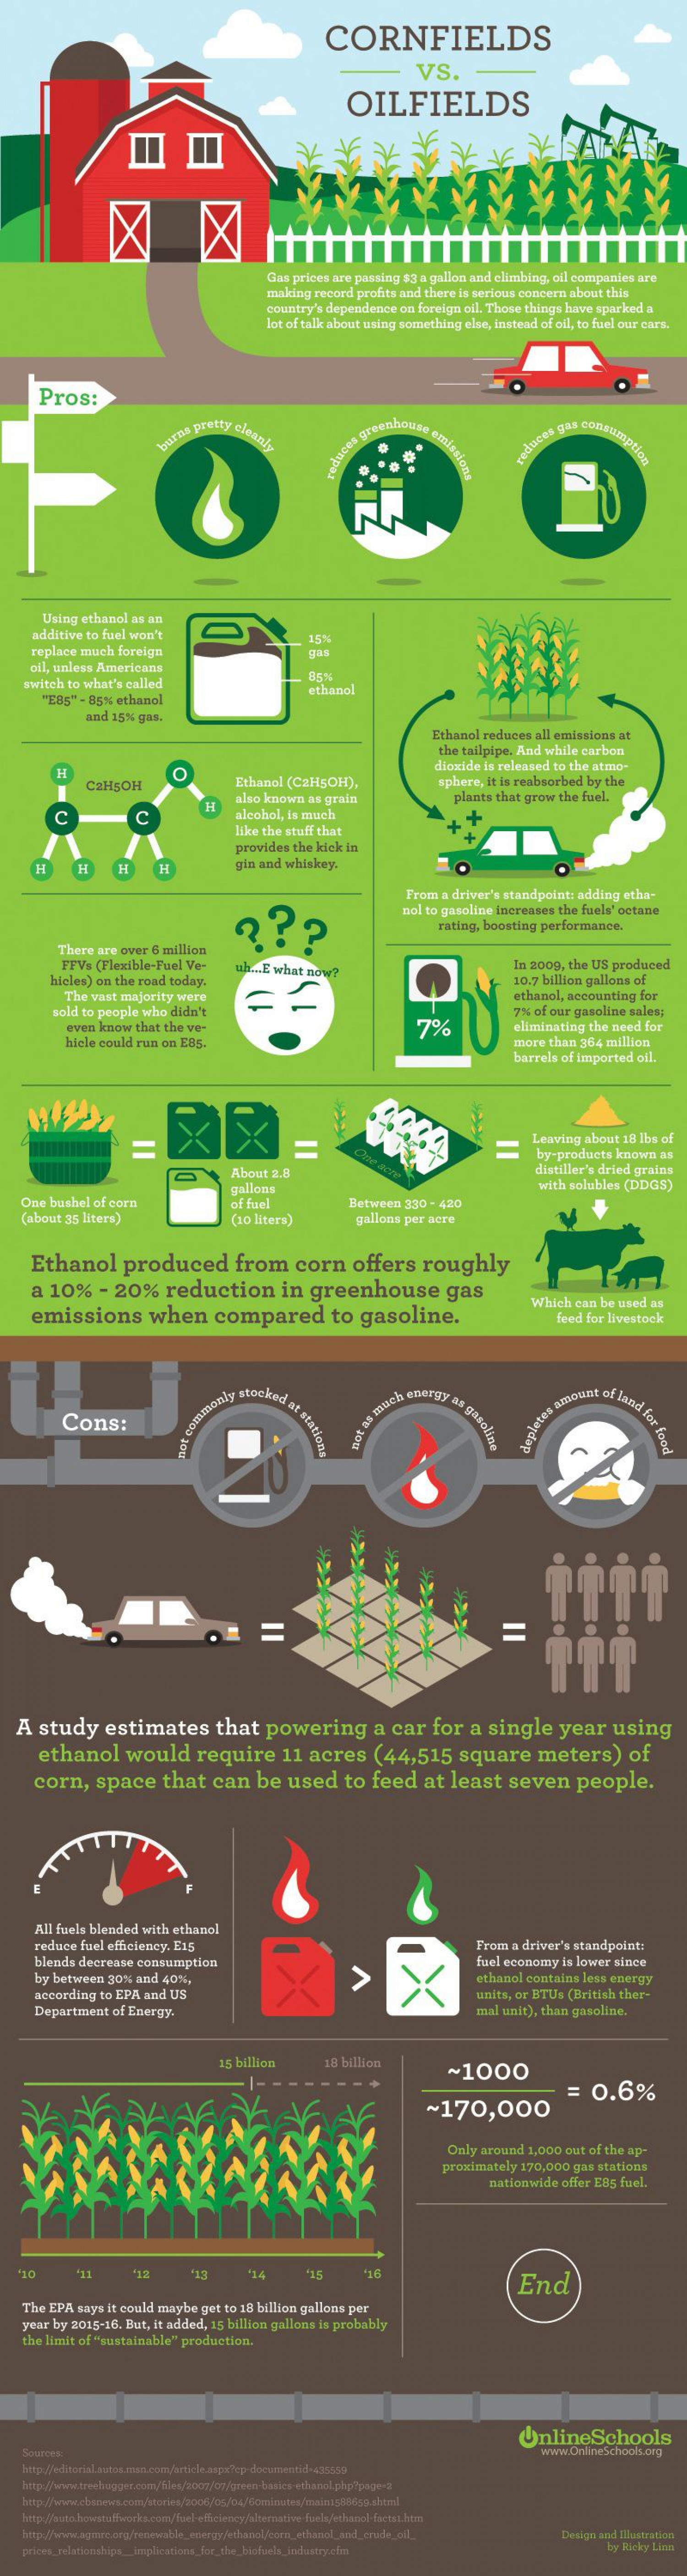 Cornfields Vs. Oilfields Infographic